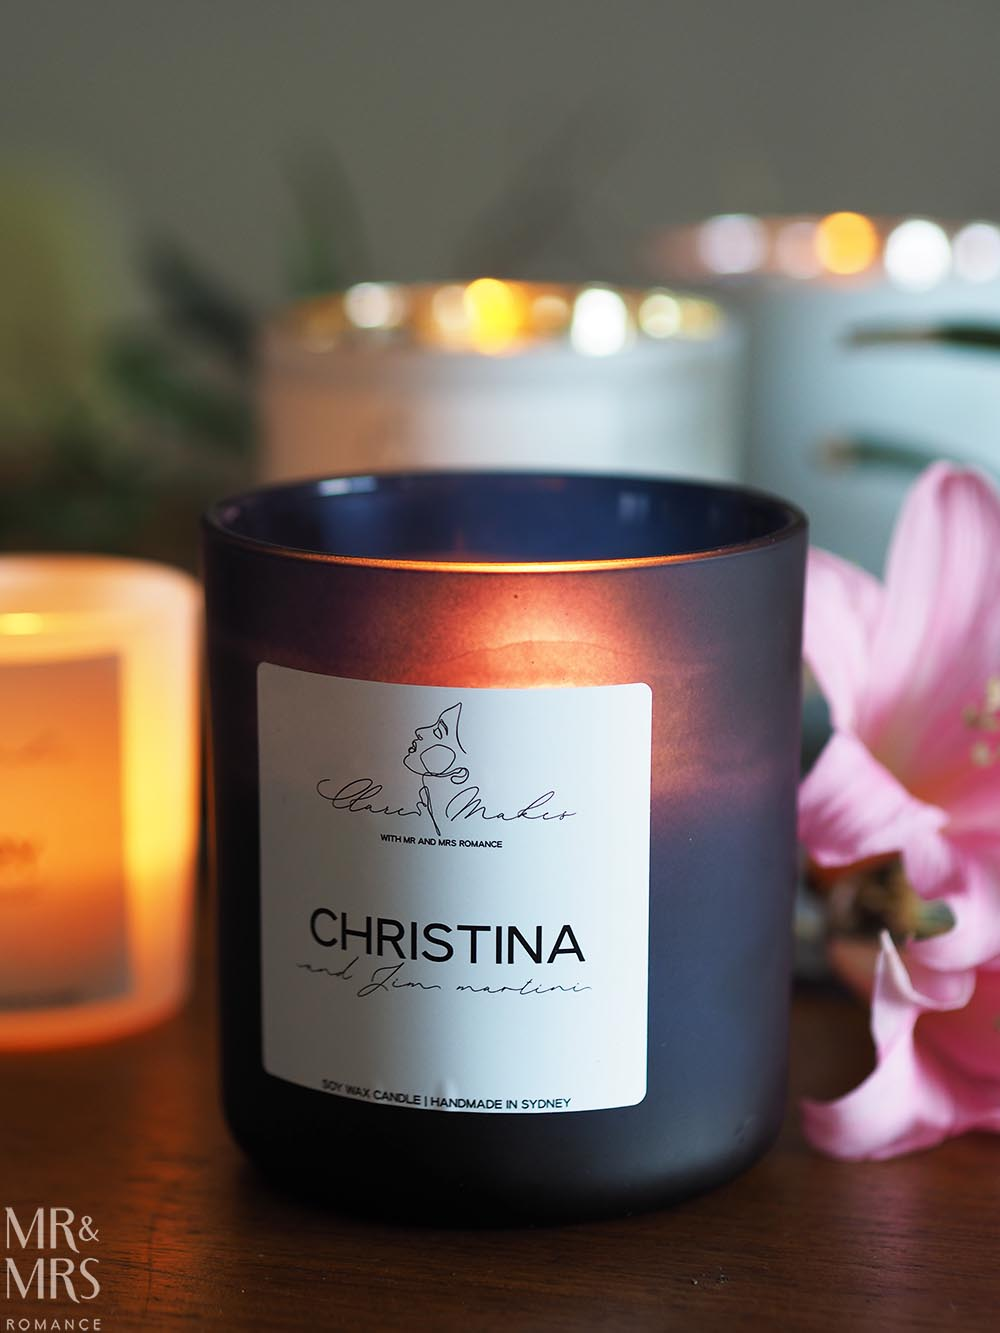 Romantic gifts - Clare Makes candle - Christina and Jim martini